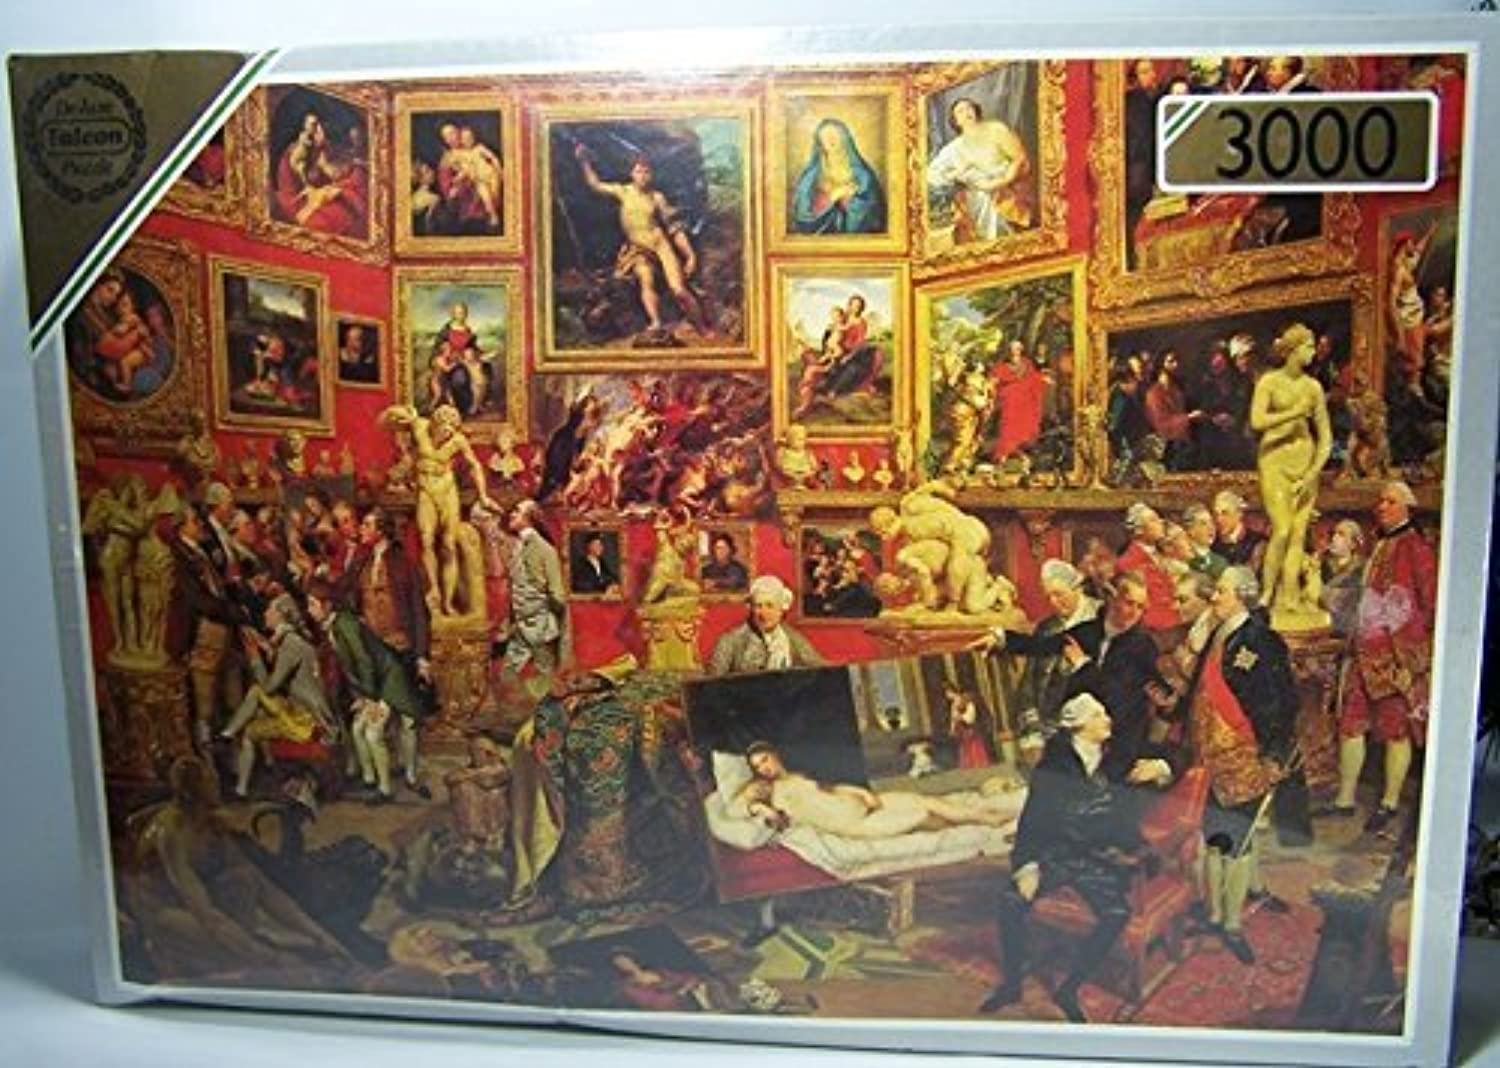 The Tribuna of the Uffizi By Zoffany, Majestic Deluxe Jigsaw Puzzle, 3000 Pieces by Falcon Games Limited